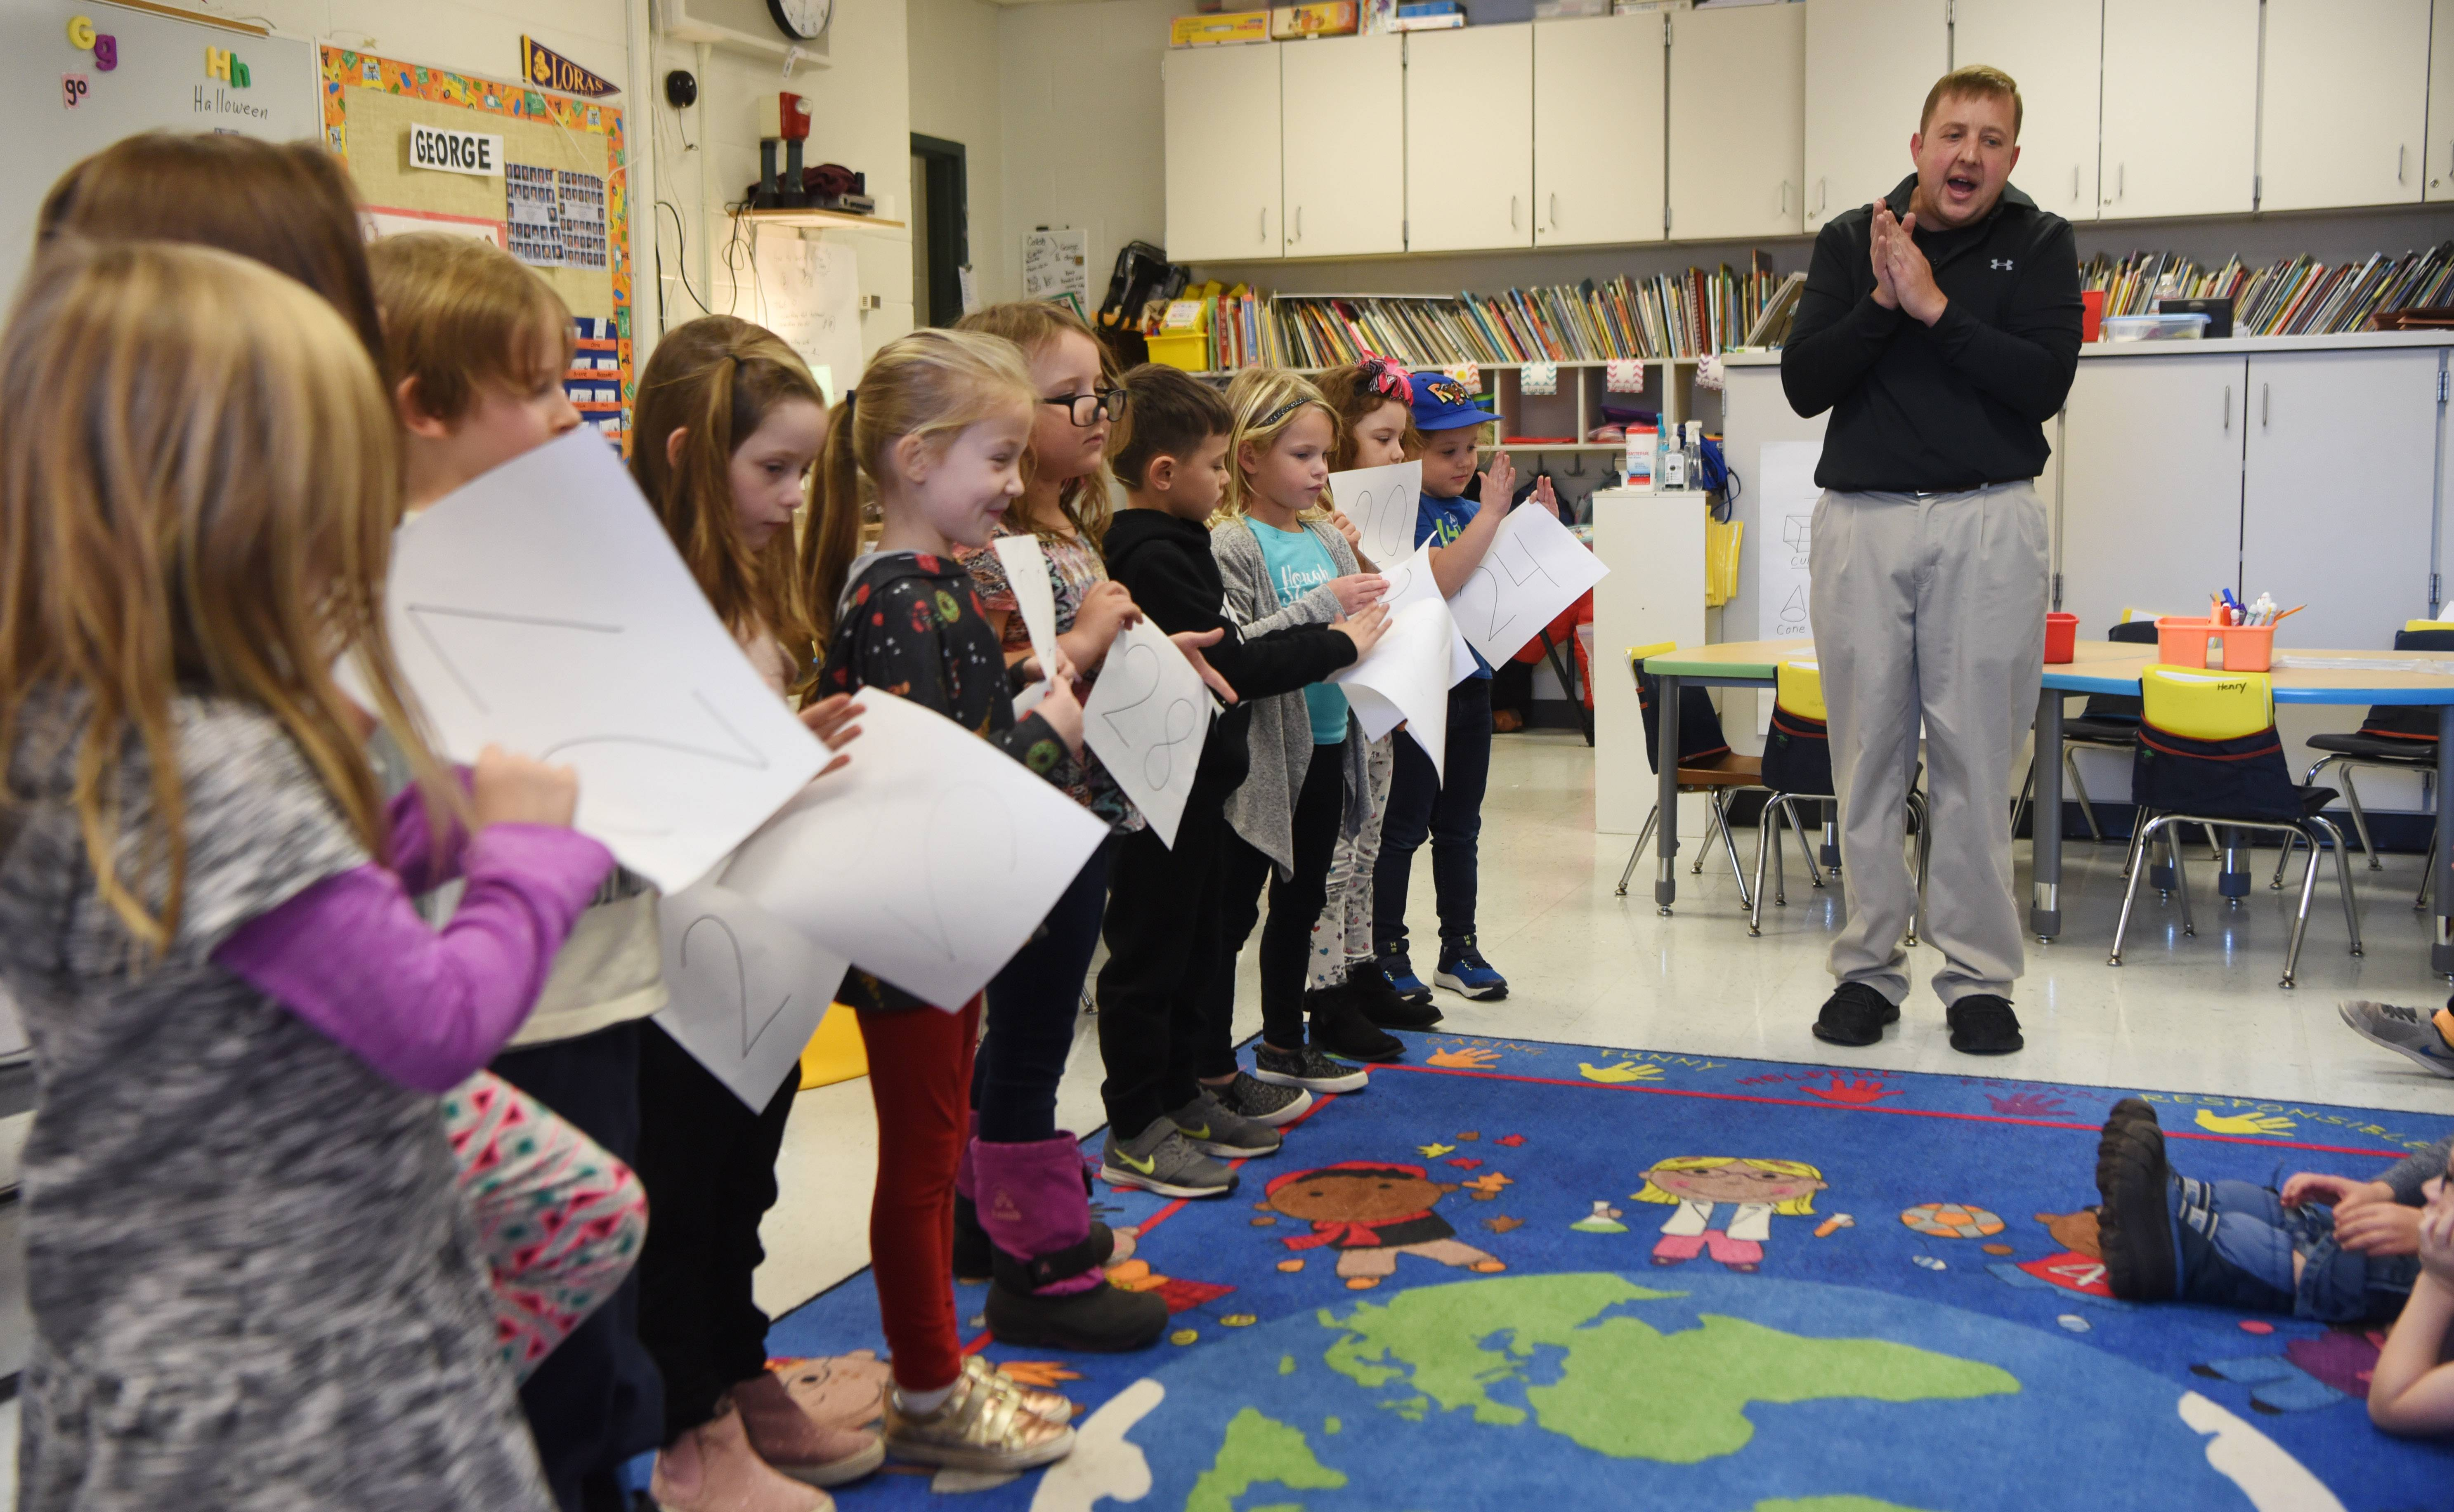 Kindergarten teacher George Vlasis and his students get ready to put two-digit numbers in proper order during their class at Hough Street Elementary School in Barrington.